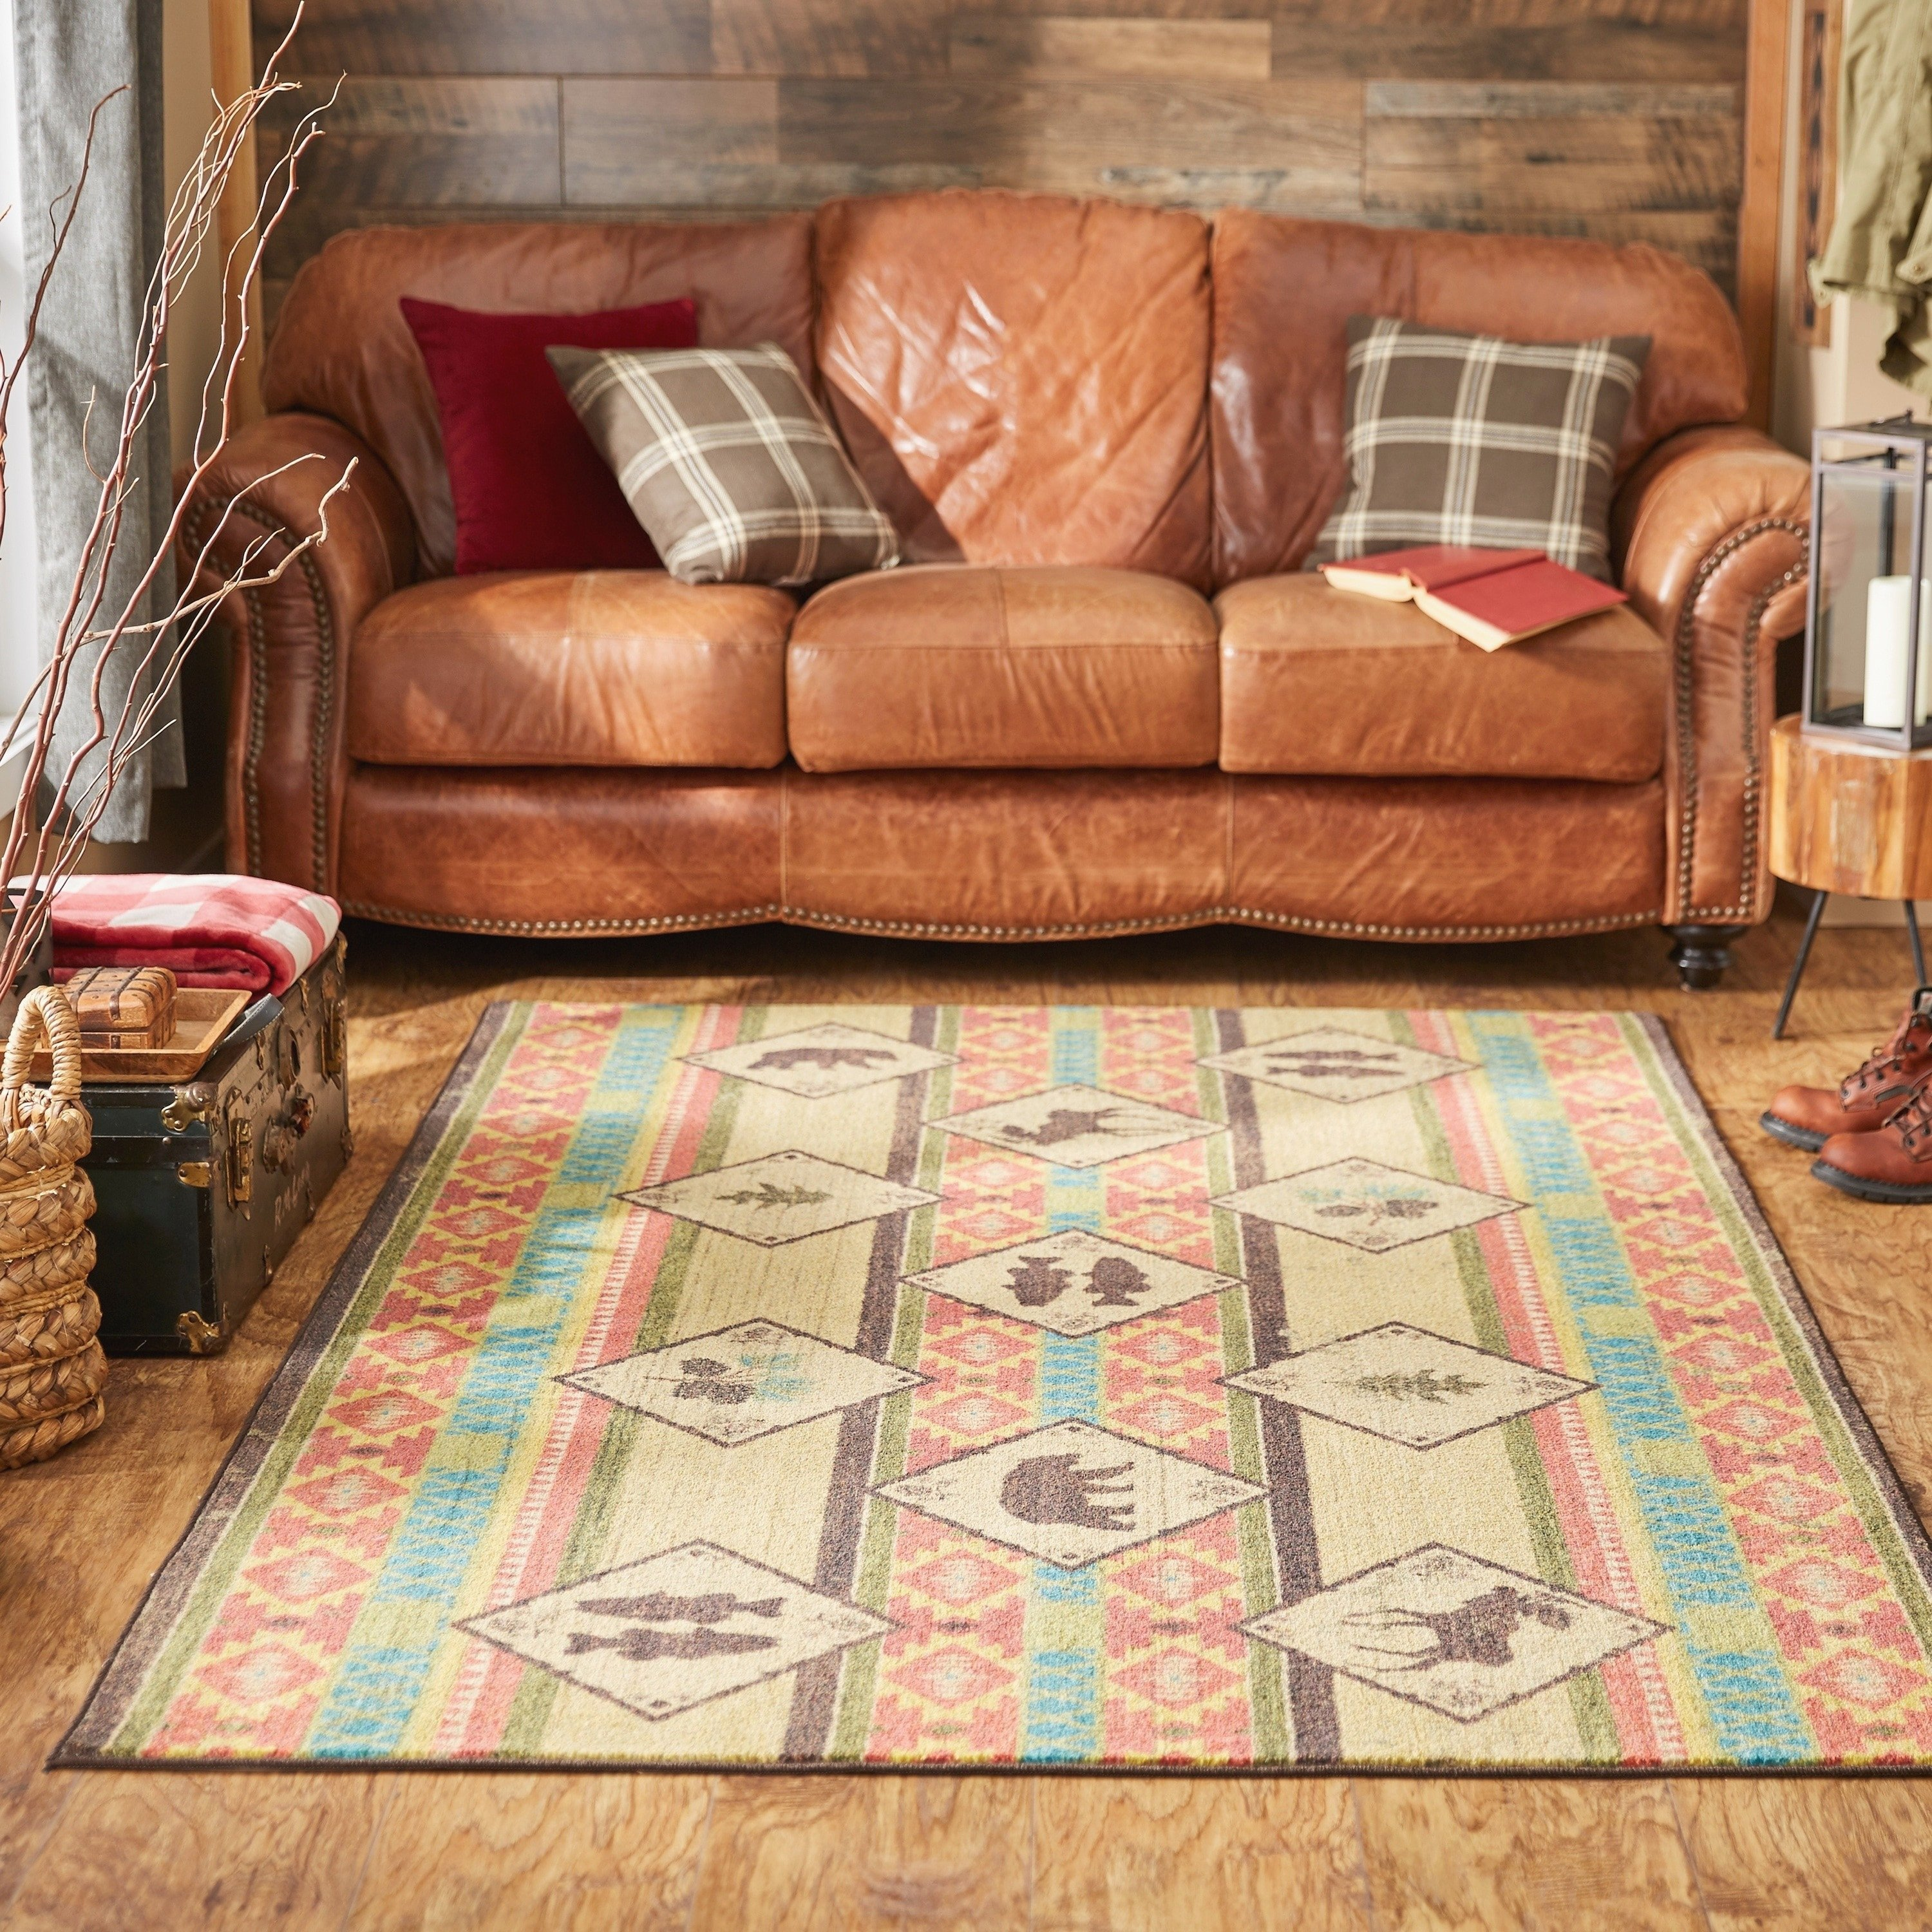 Area Rug for Bedroom Size Awesome 13 Fashionable Carpet or Hardwood Floors In Living Room